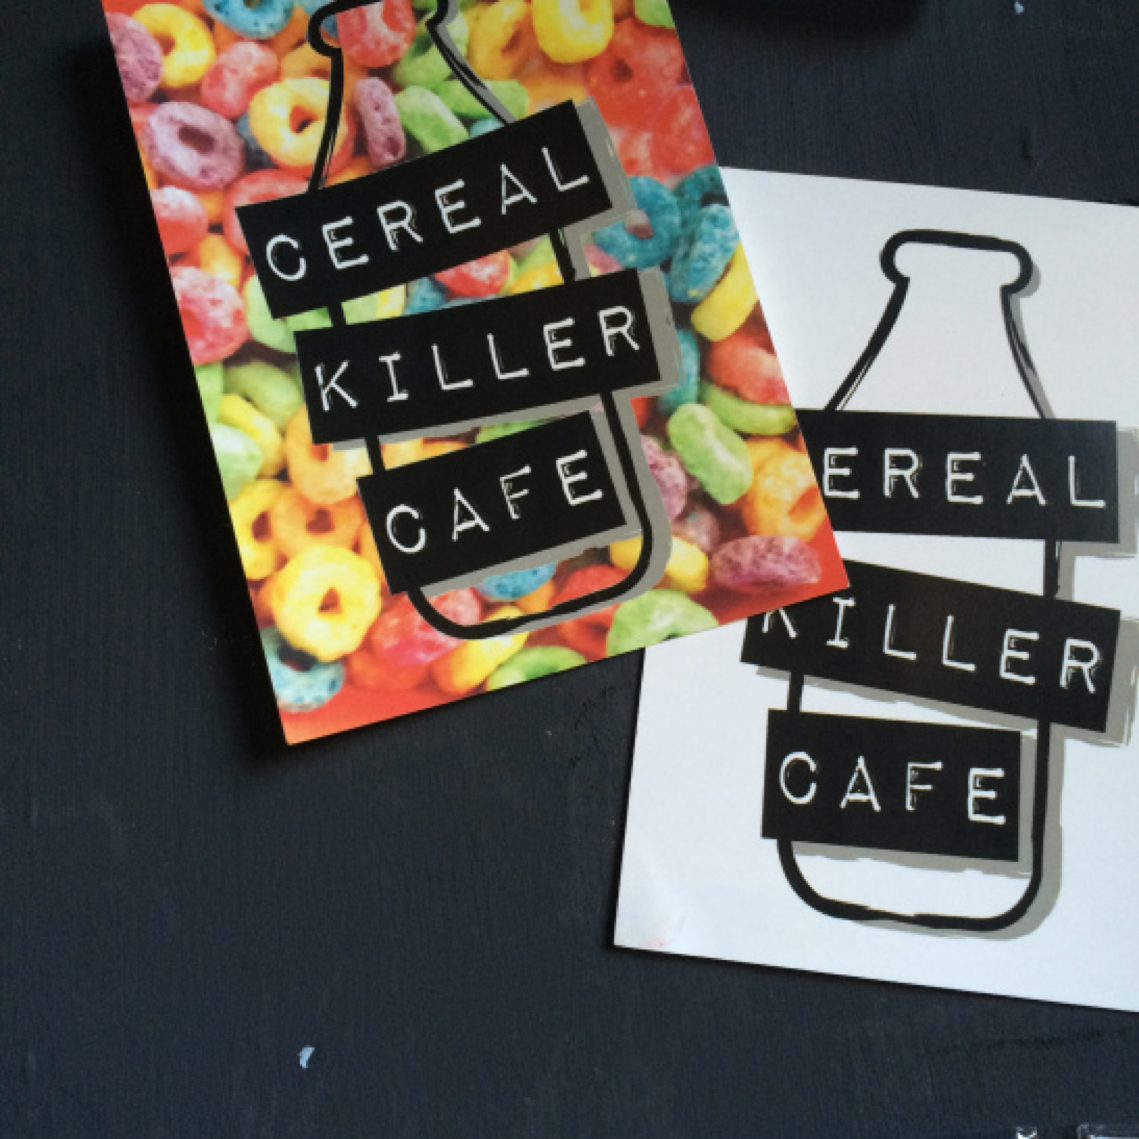 Cereal_Killer_cafe-1.png